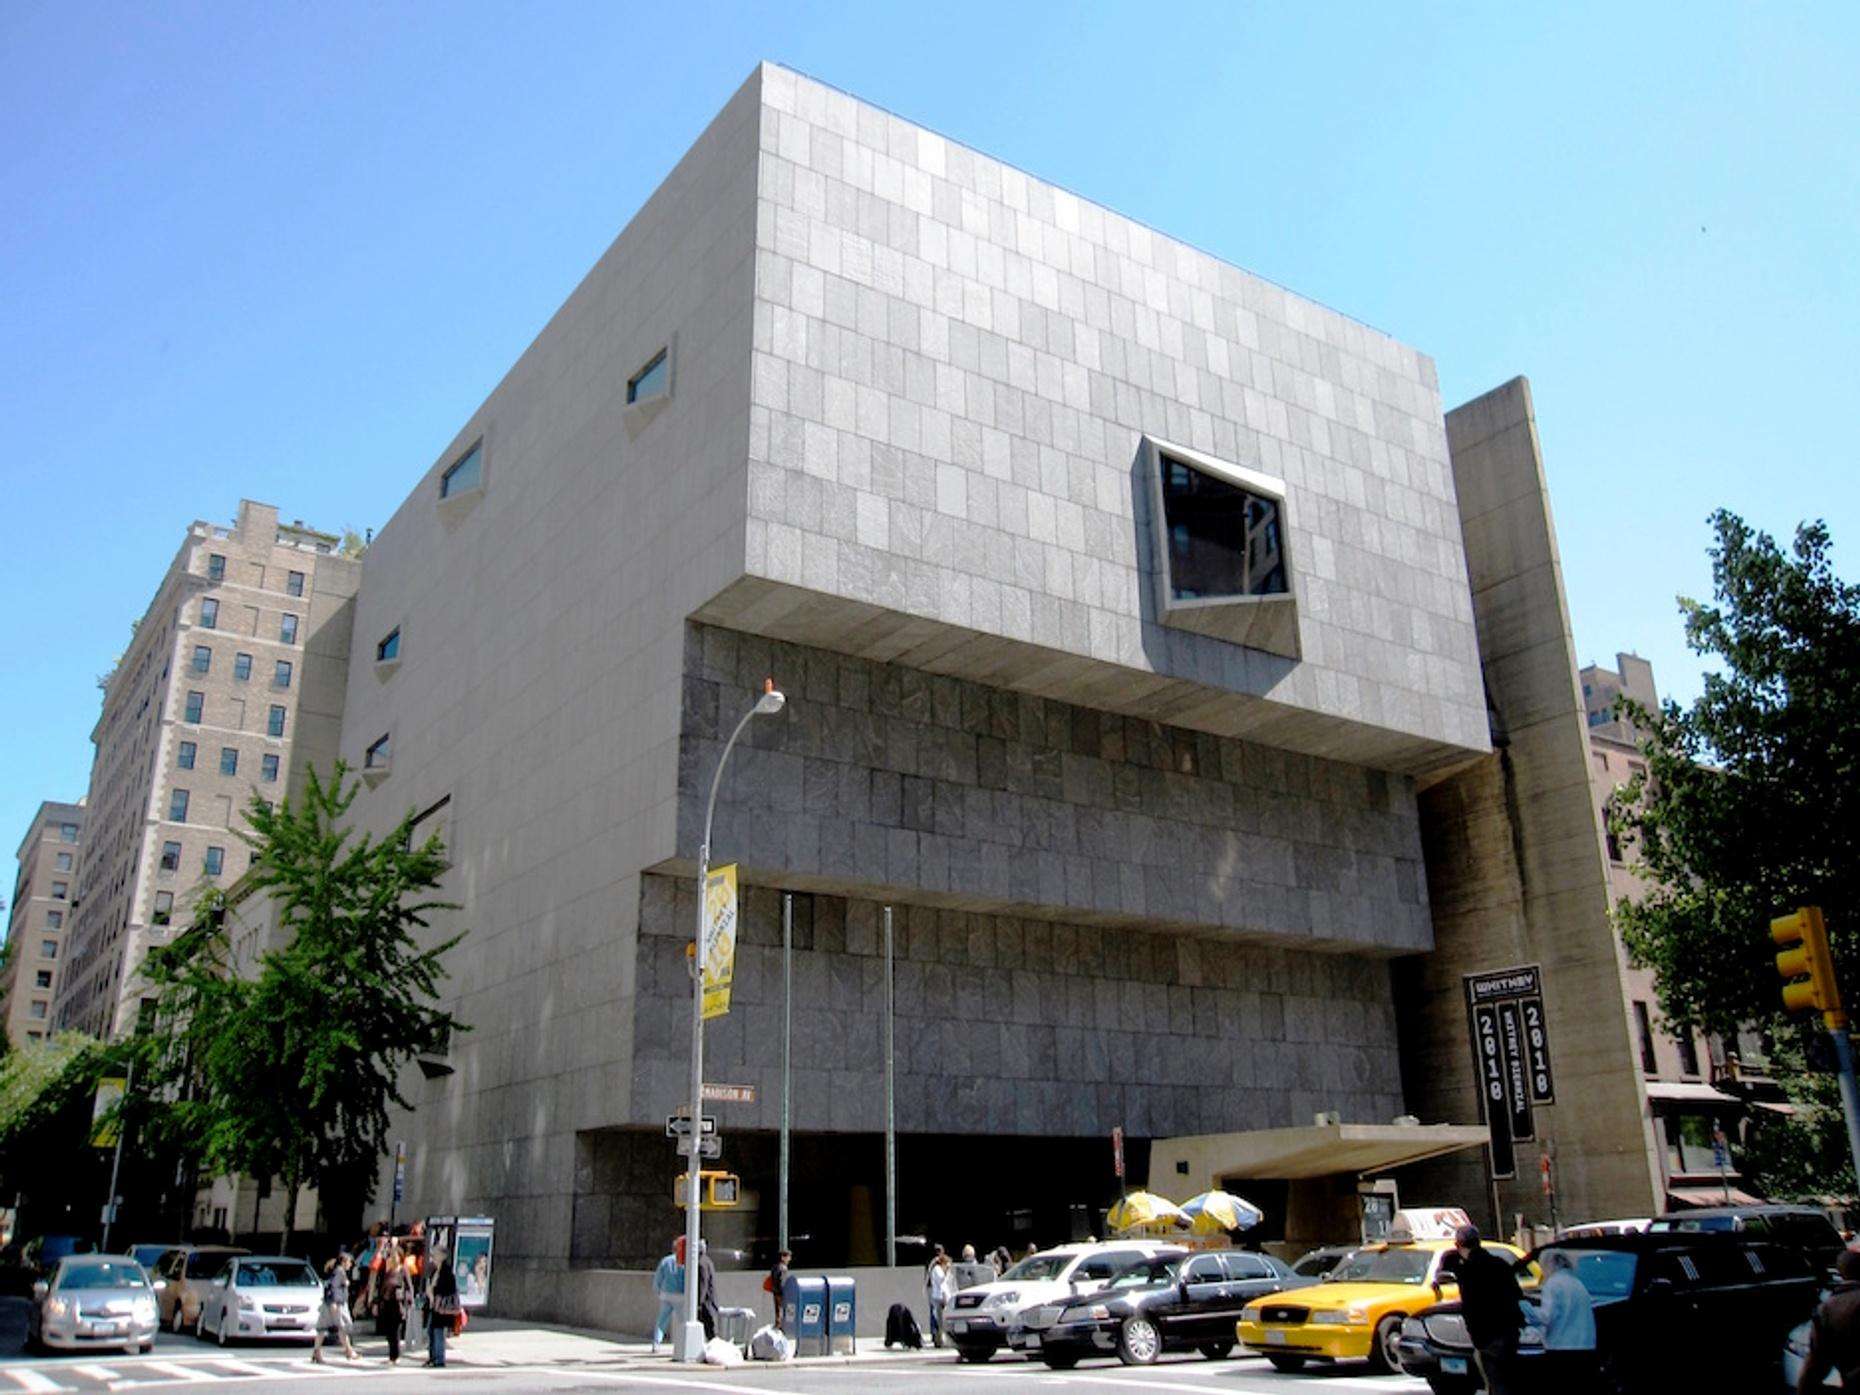 Met Breuer Guided Tour in New York City